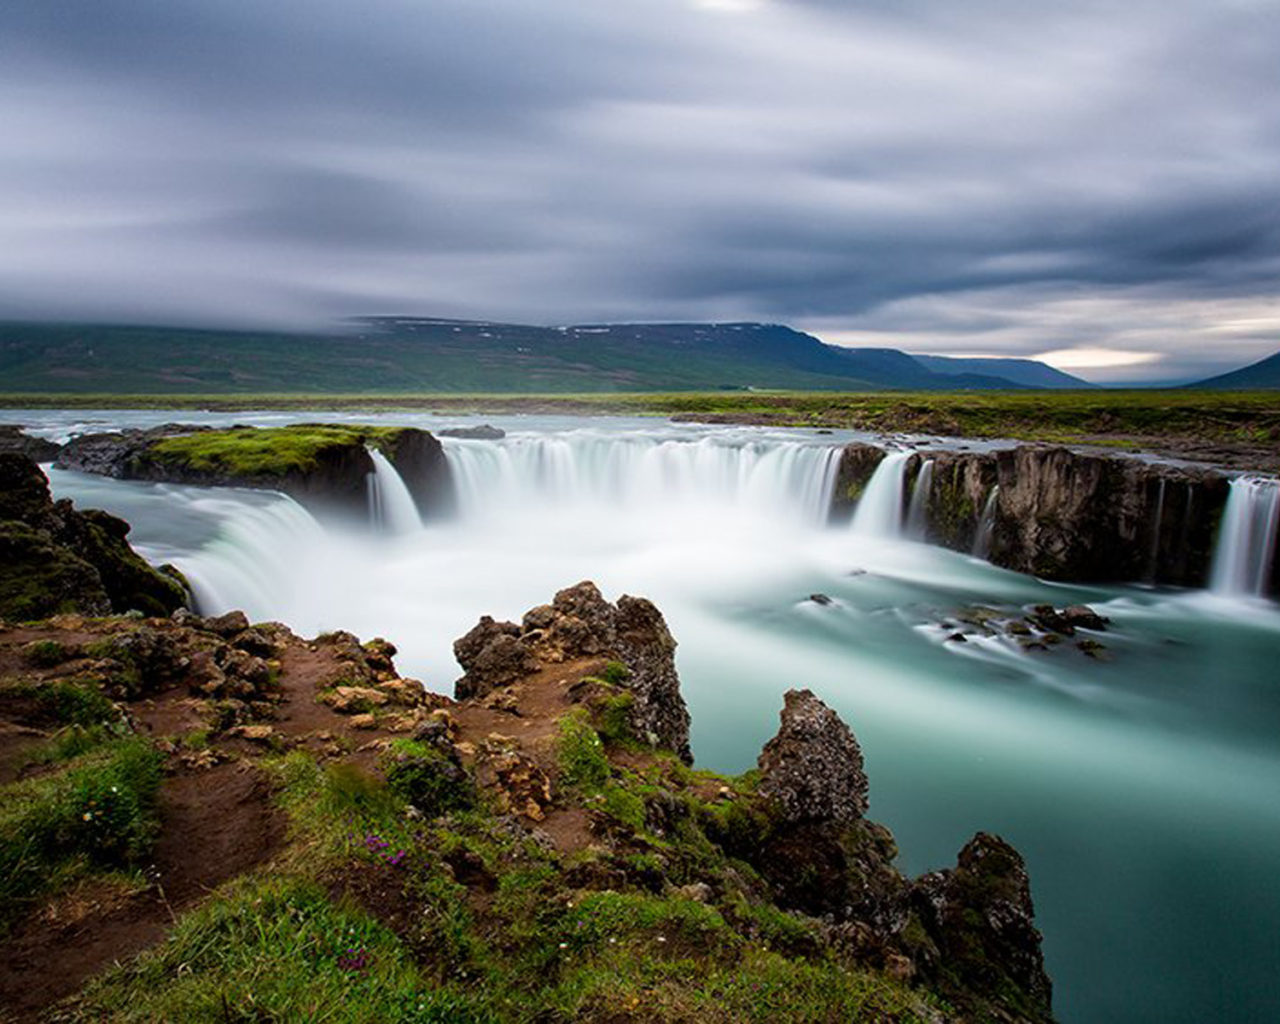 Angel Falls Hd Wallpaper Go 240 Afoss Falls Iceland Full Hd Wallpapers 1920x1200